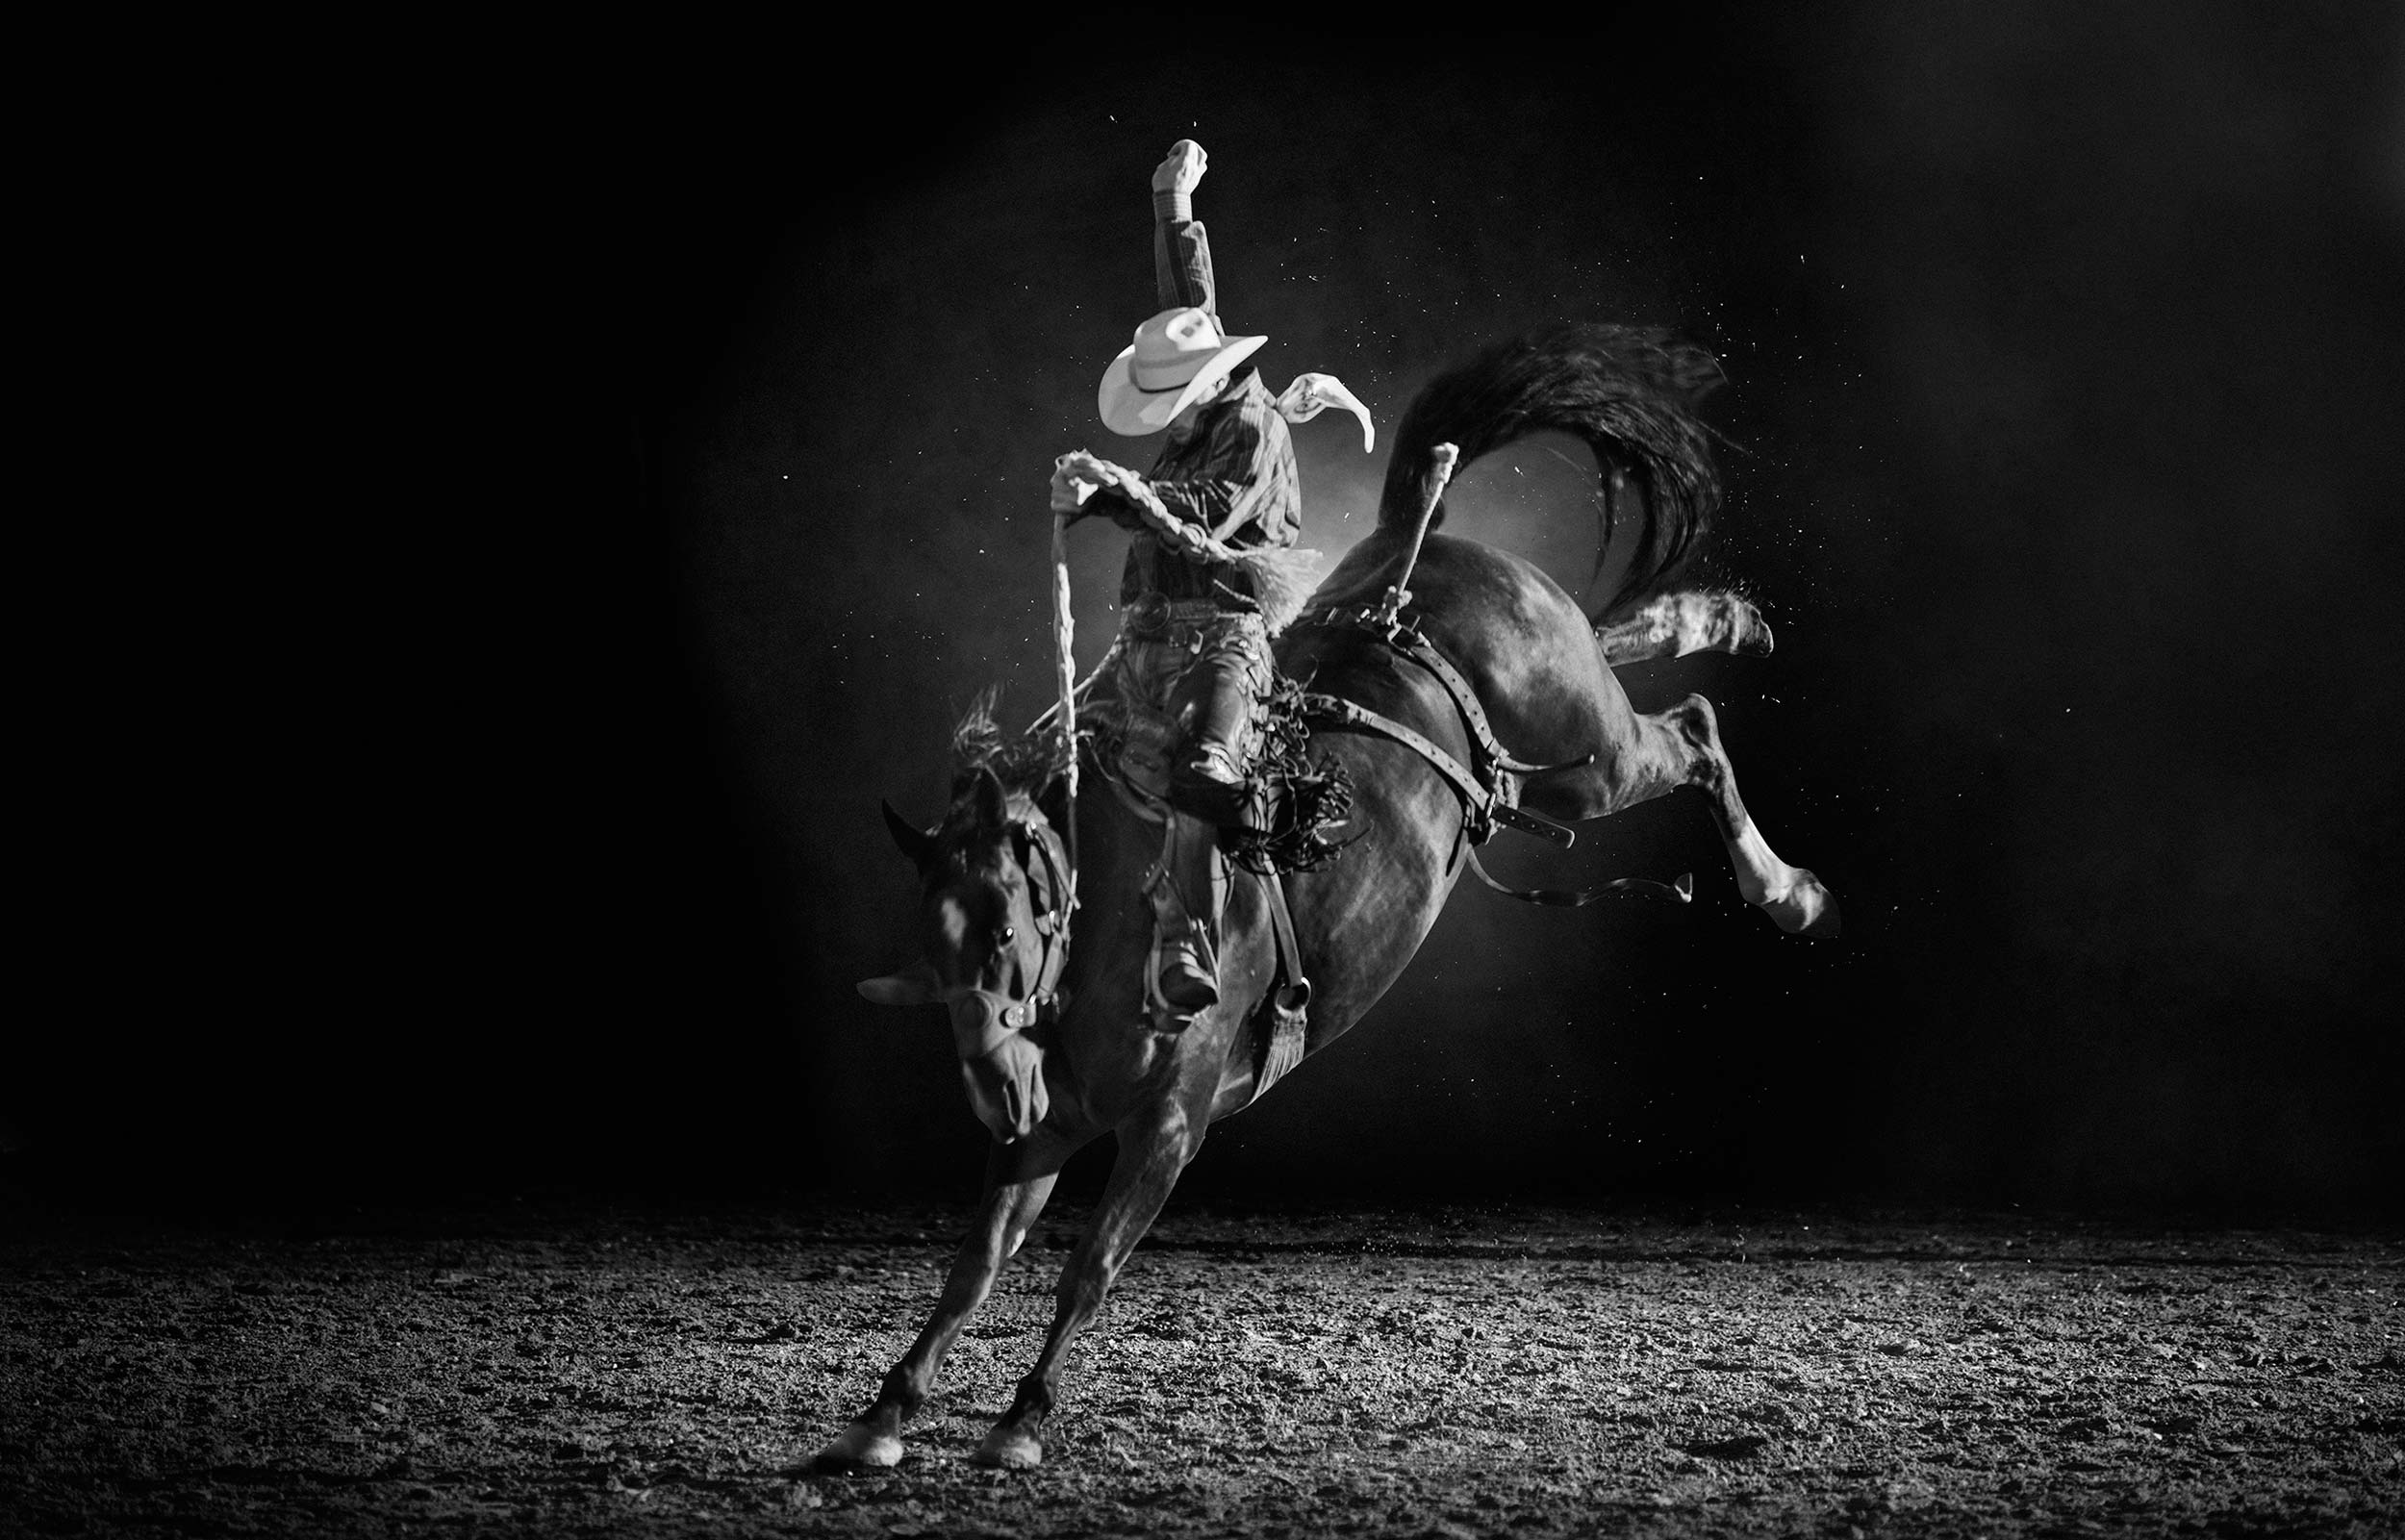 008_RODEO_11005a